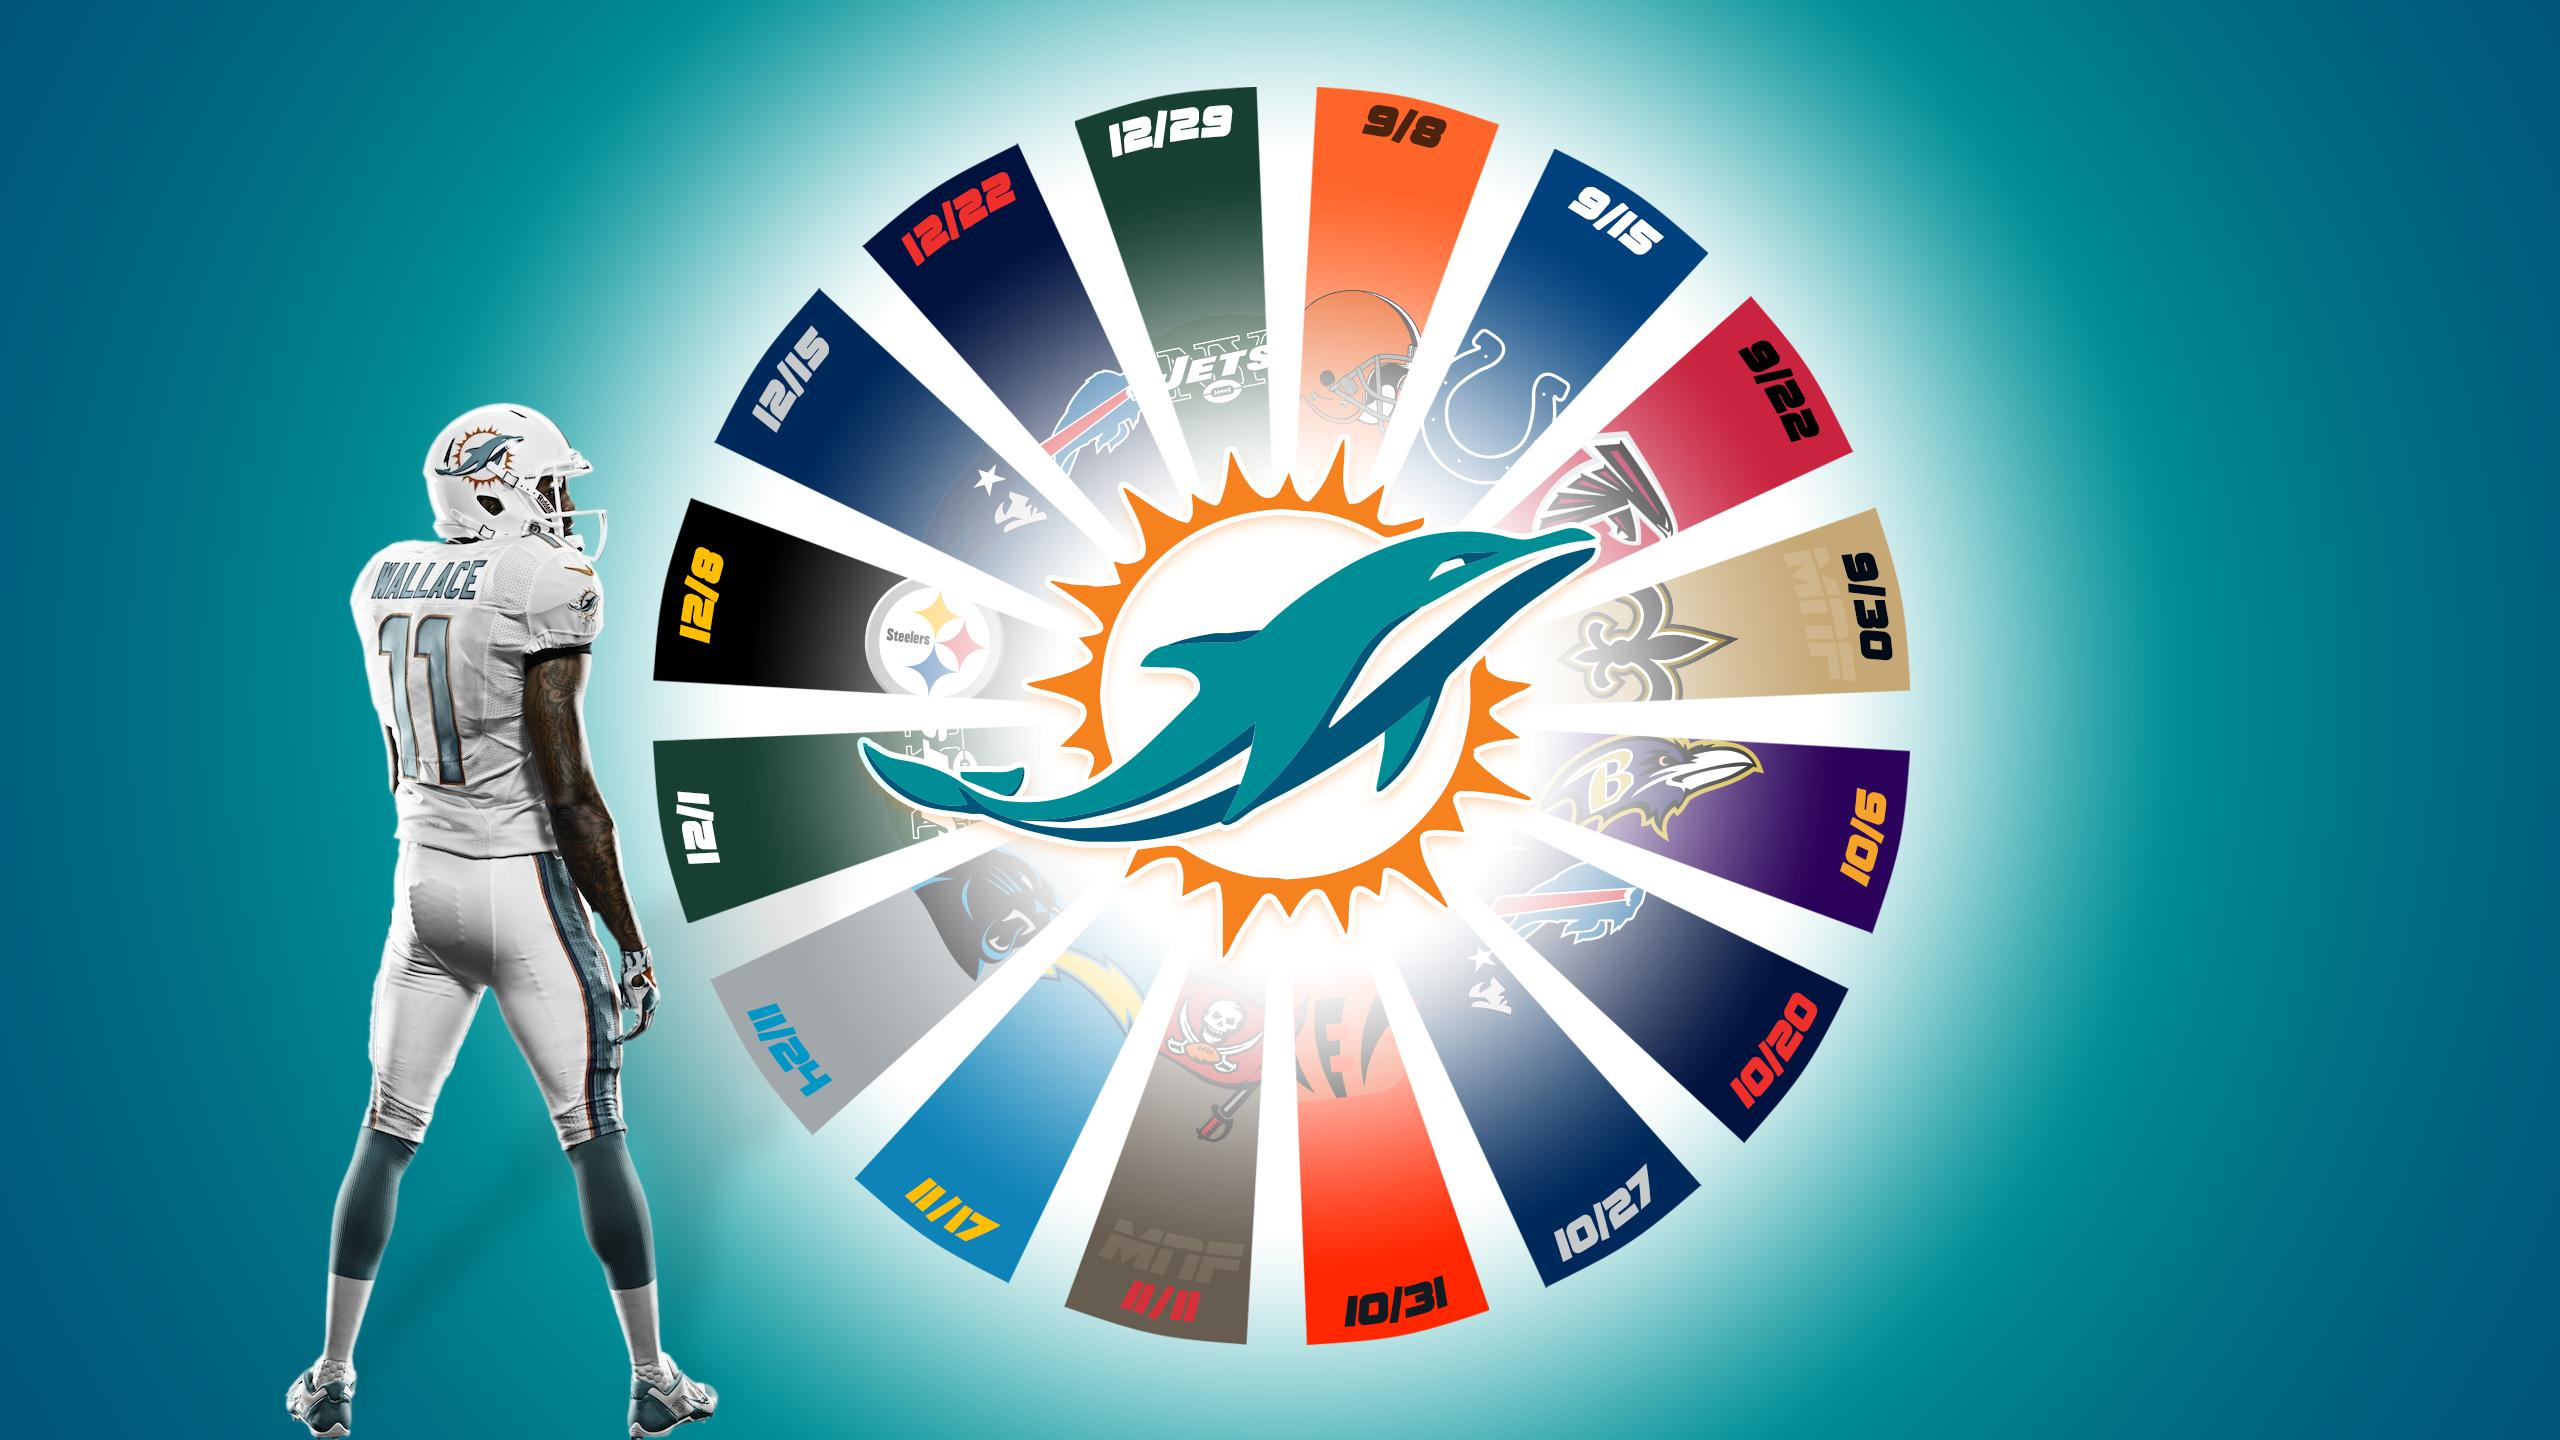 2560x1440 - Miami Dolphins Wallpapers 8